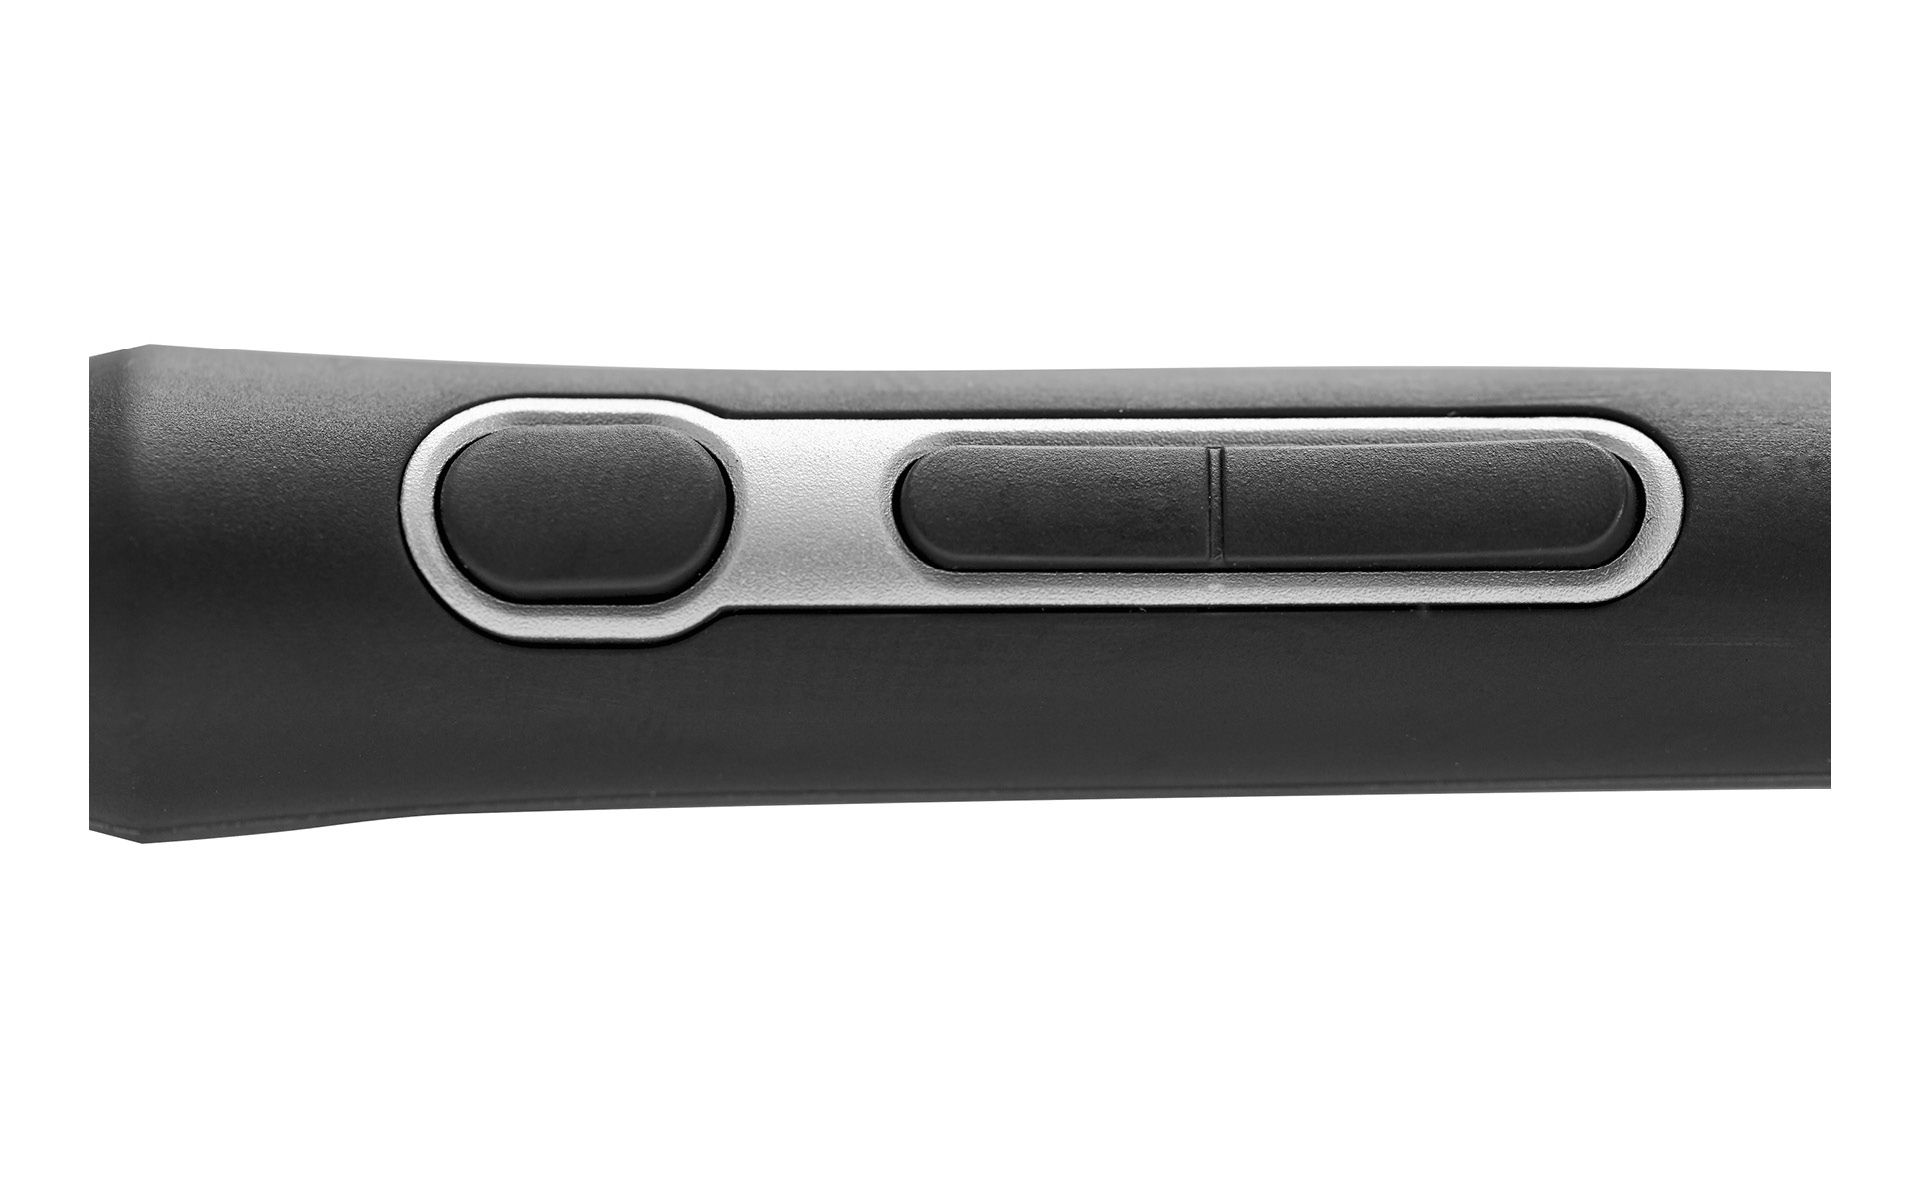 WACOM PRO PEN 3D FOR GRAPHIC DRAWING - KP-505-00DZX